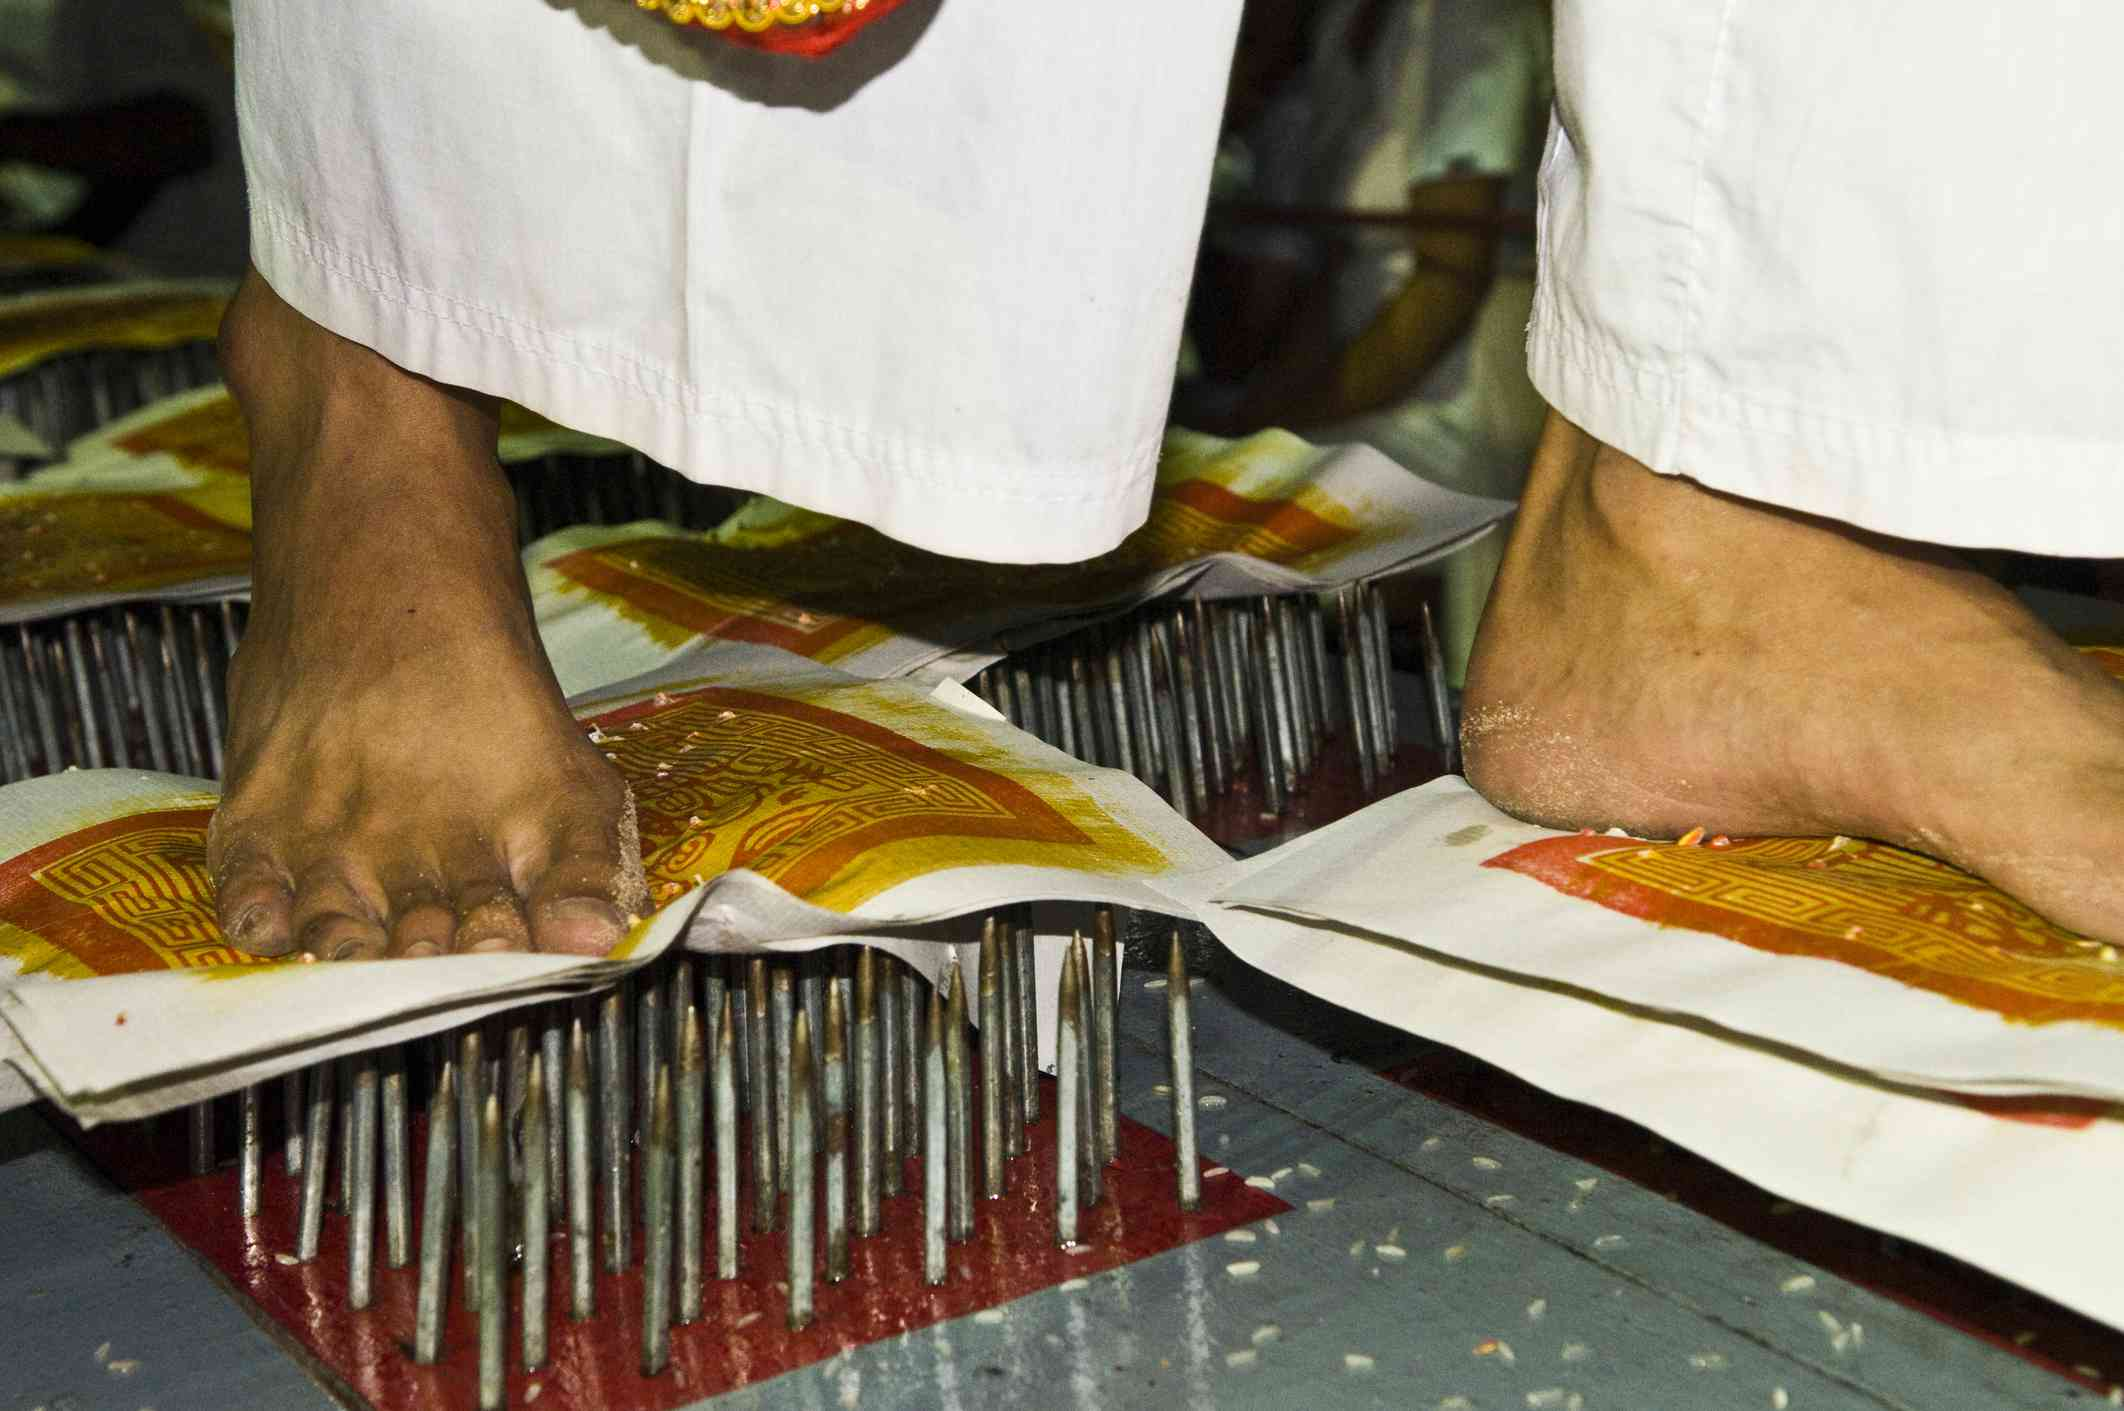 Walking on nails during the vegetarian festival in Thailand